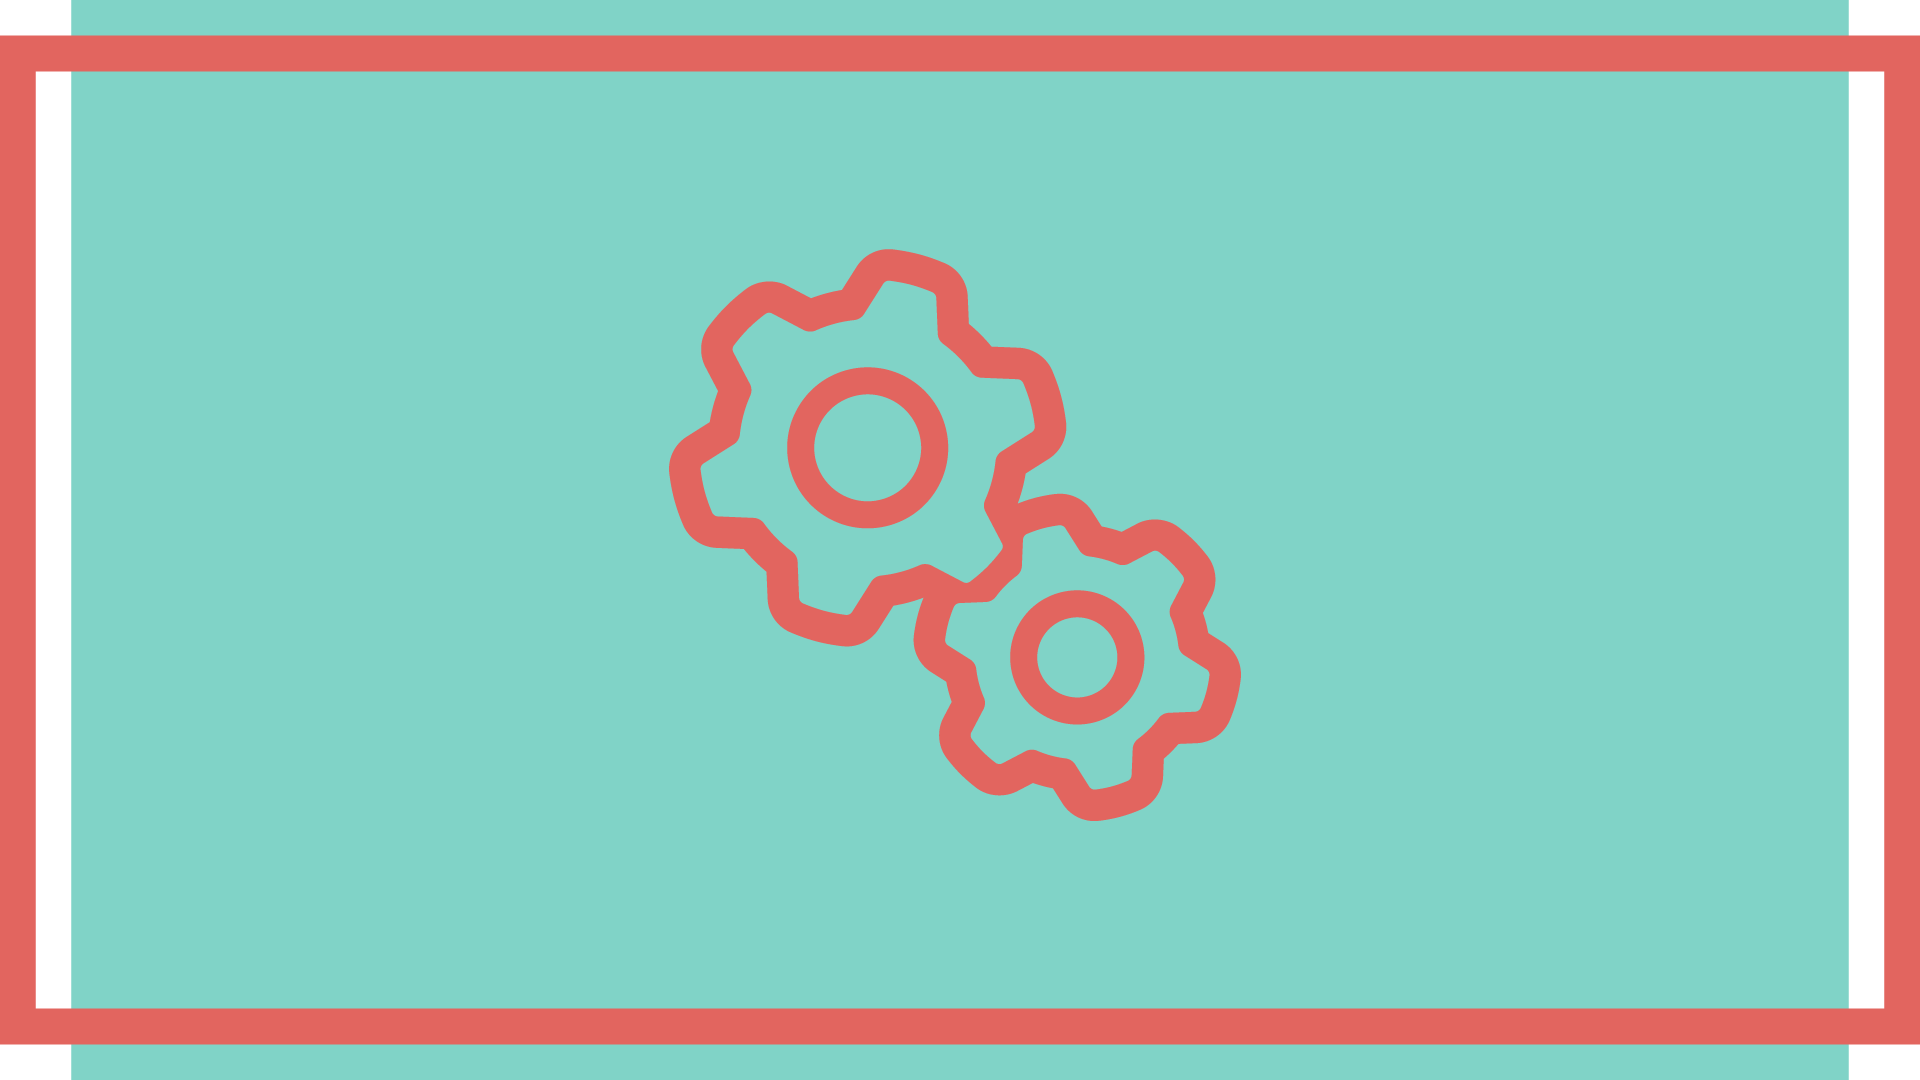 A red cogs icon over a pale mint green background